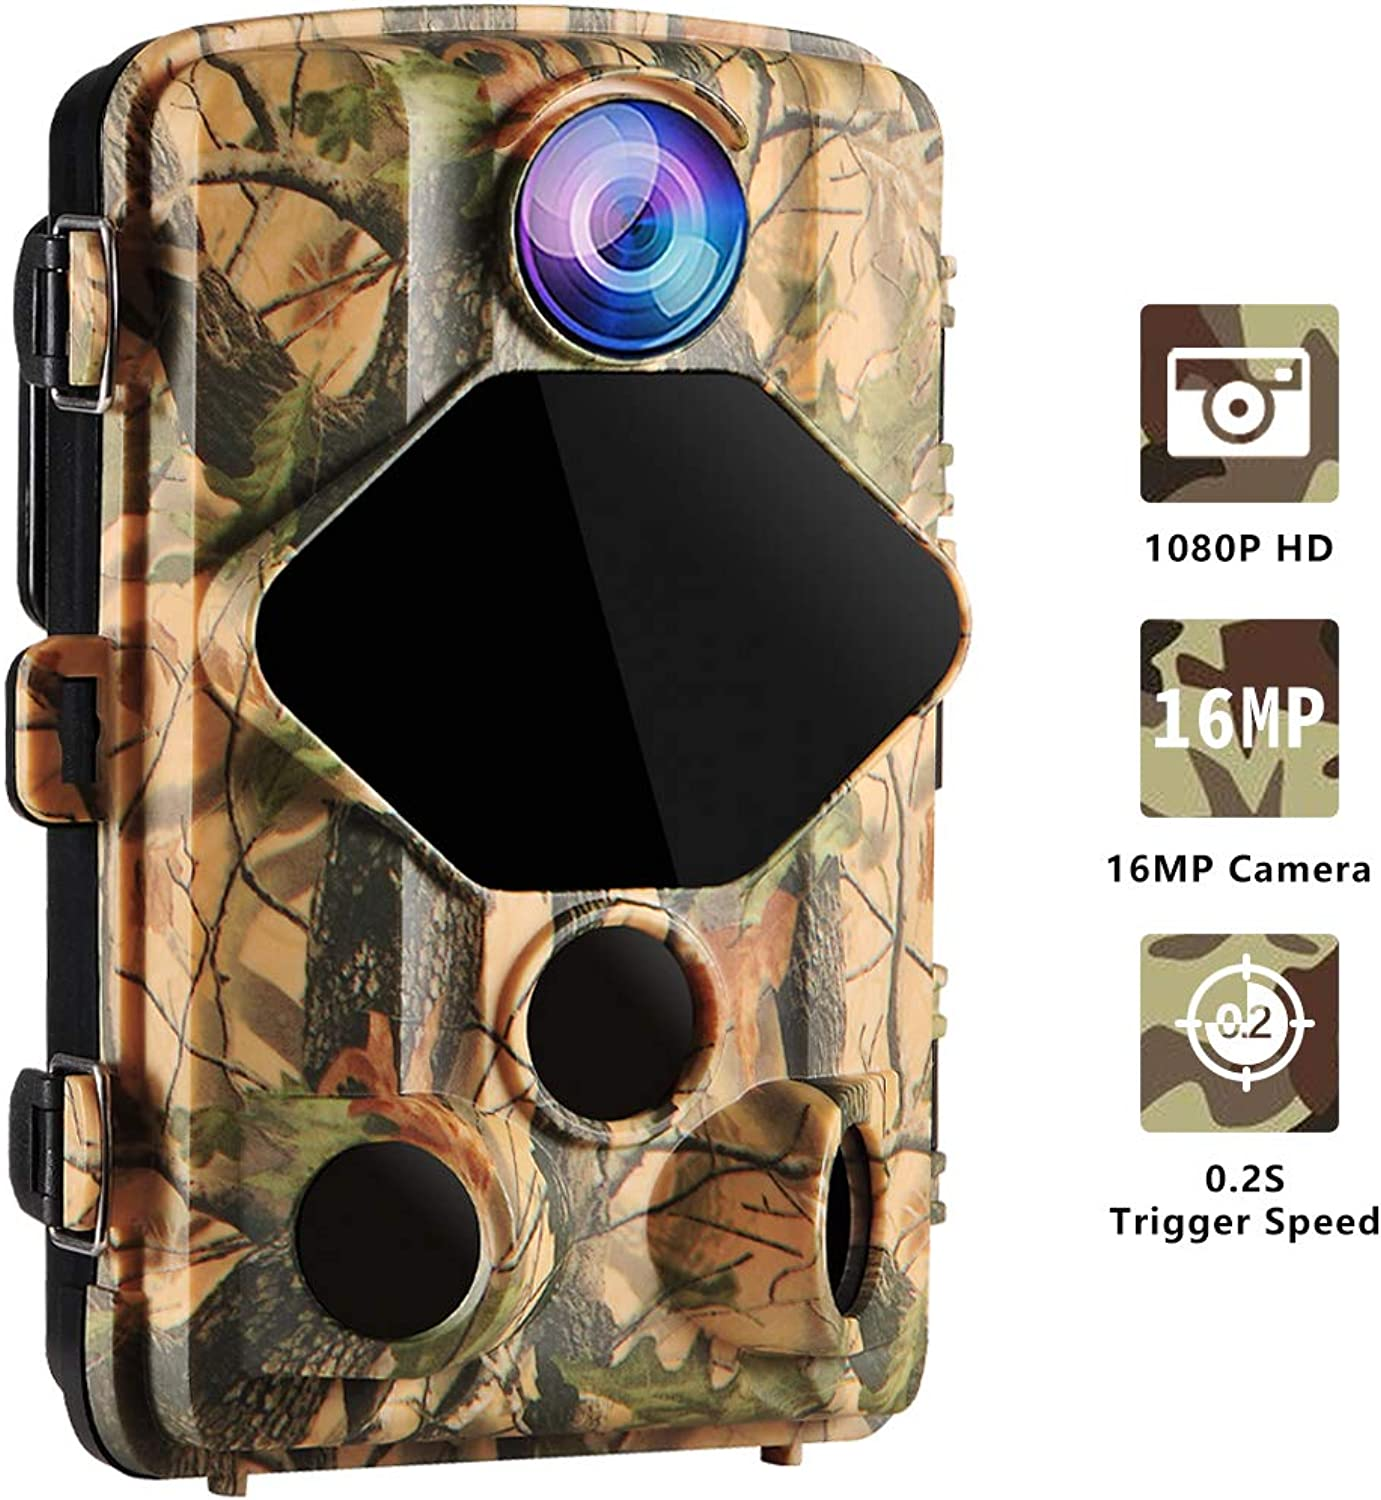 Wansview Trail Hunting Camera 16MP 1080P HD, with 0.2S Trigger Time Motion Detection and 120 Degree Viewing Angle and Night Vision for Wildlife and Home Security Cam T01